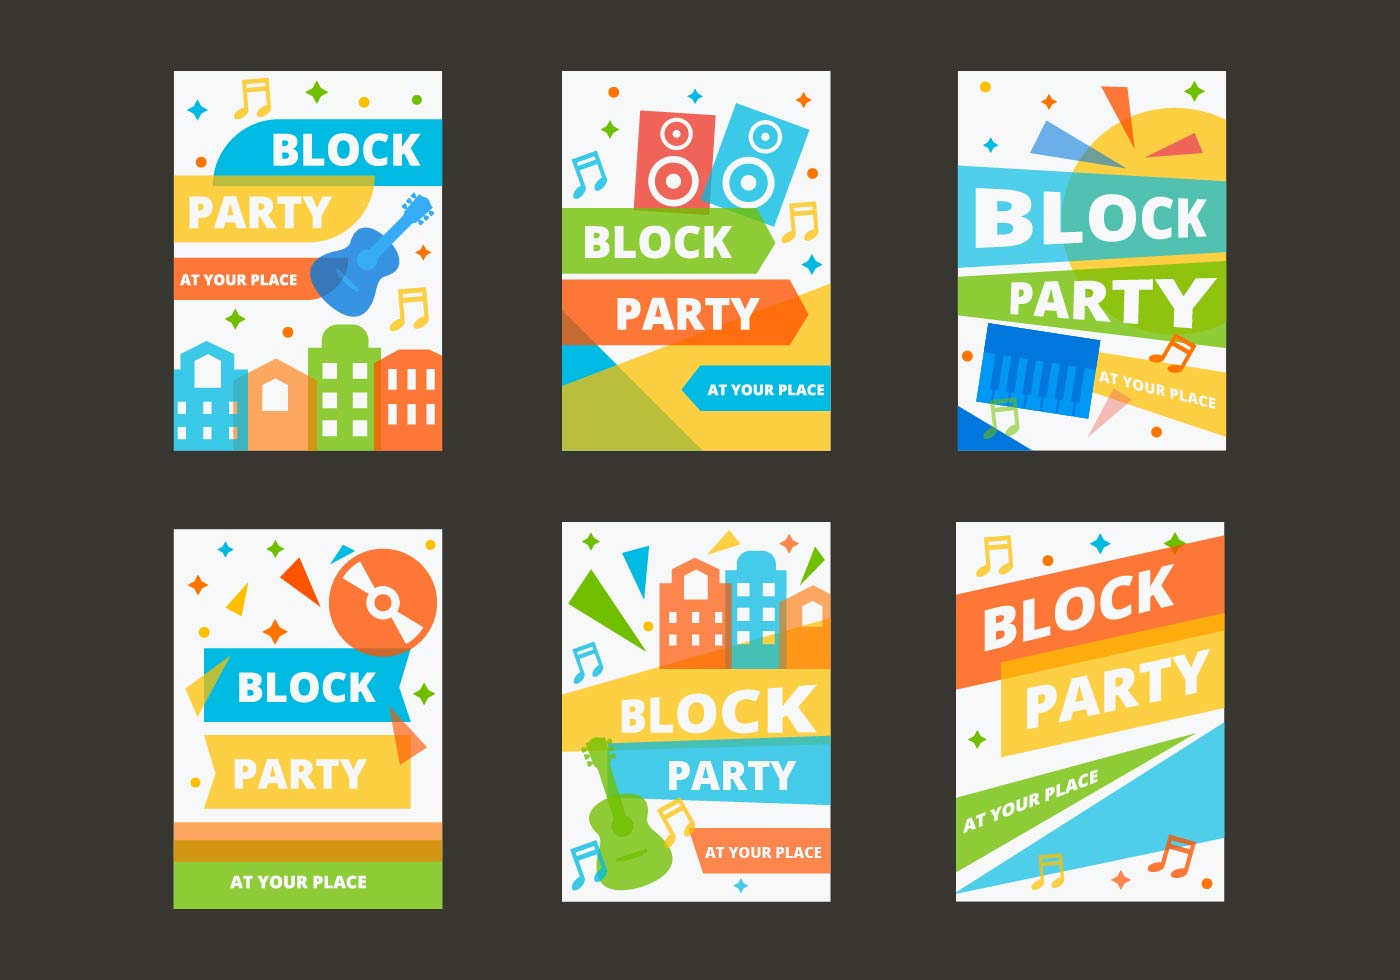 free block party template poster vector download free vector art stock graphics images. Black Bedroom Furniture Sets. Home Design Ideas